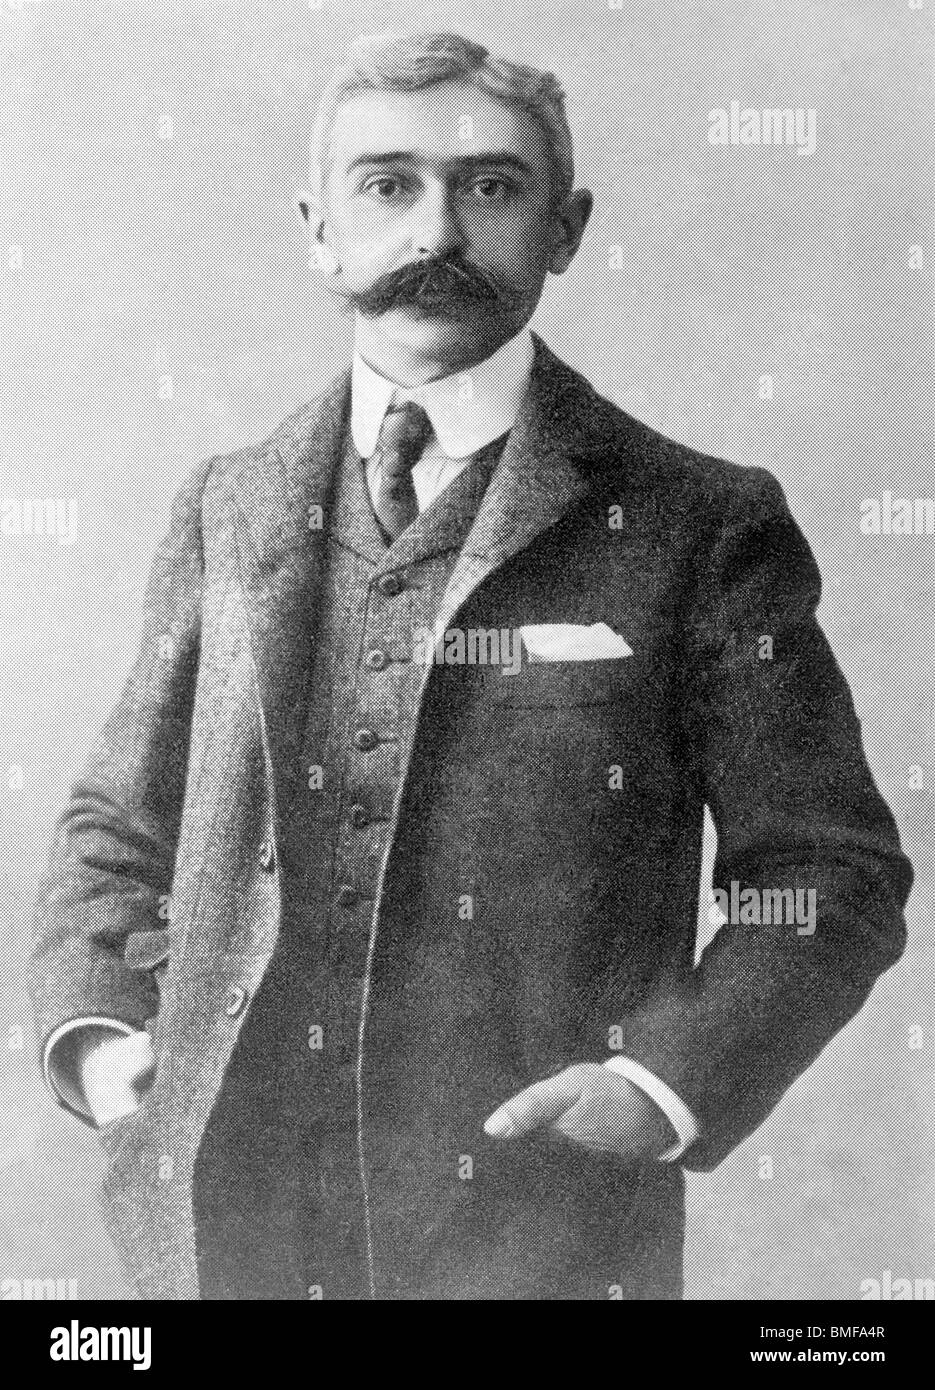 Undated photo of Baron Pierre de Coubertin (1863 - 1937) - founder of the IOC and 'father' of the modern - Stock Image